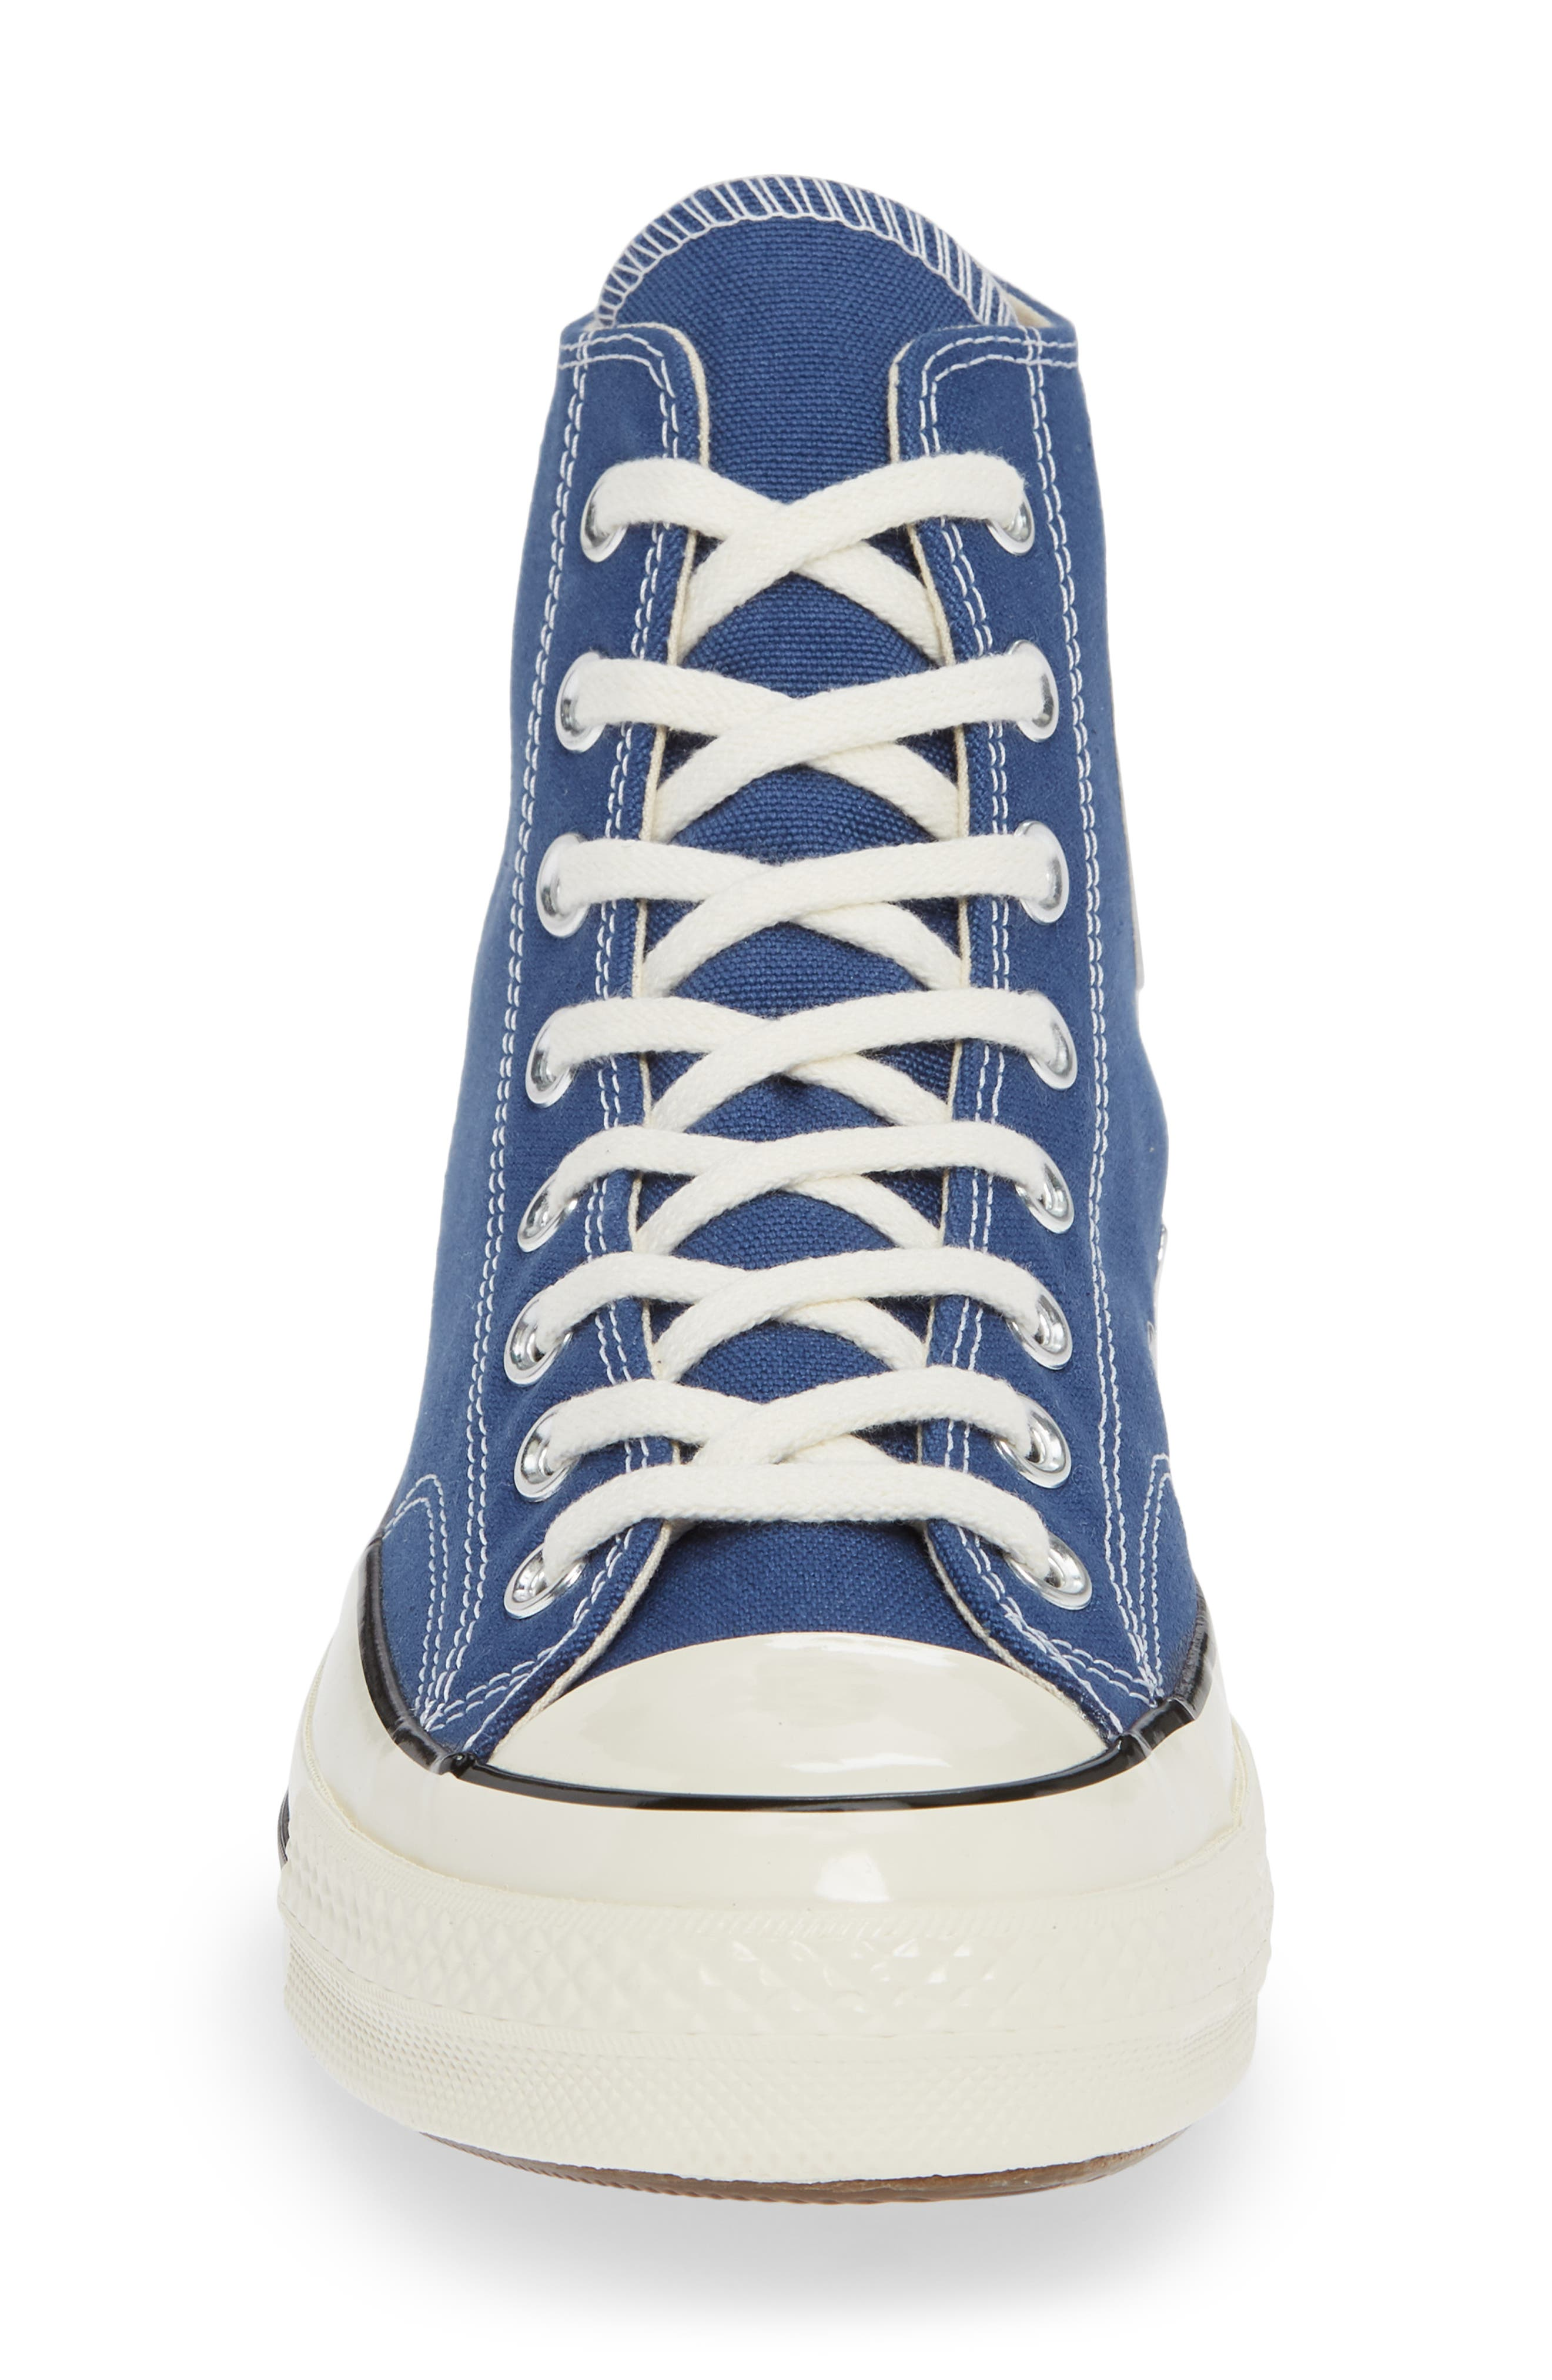 CONVERSE, Chuck Taylor<sup>®</sup> All Star<sup>®</sup> 70 Vintage High Top Sneaker, Alternate thumbnail 4, color, TRUE NAVY/ BLACK